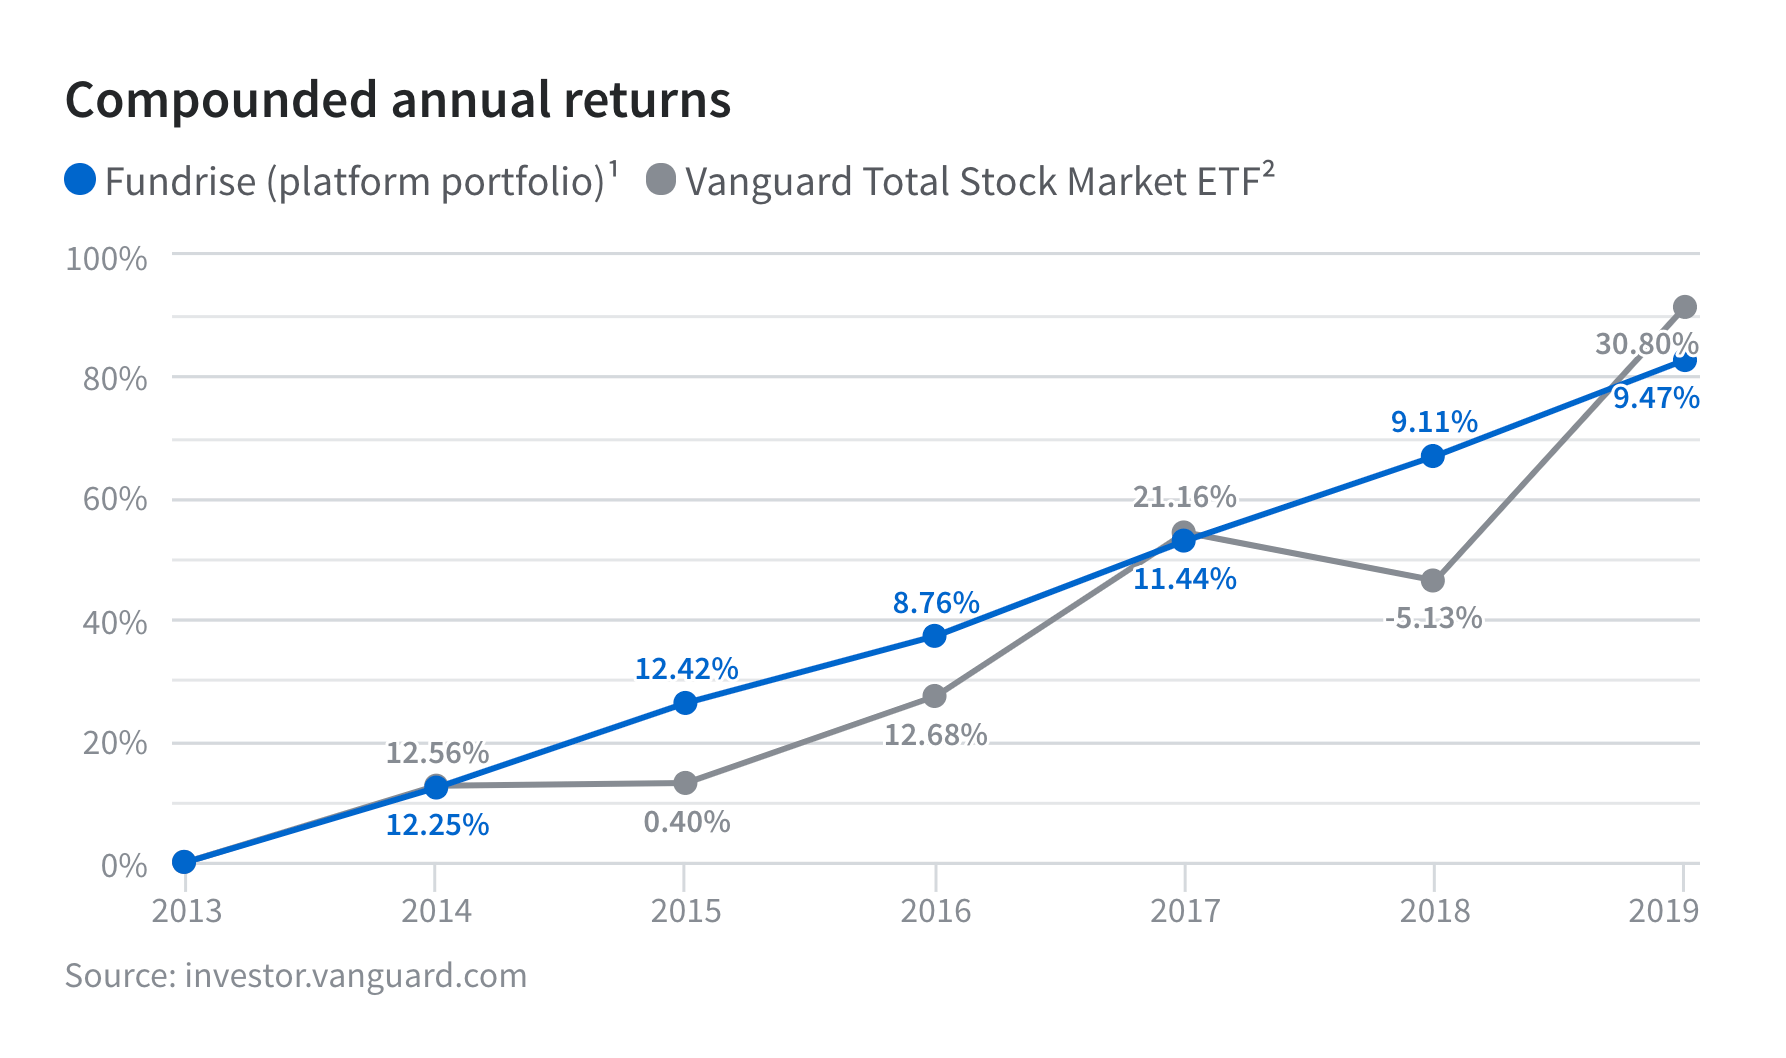 Fundrise Compound Annual Returns